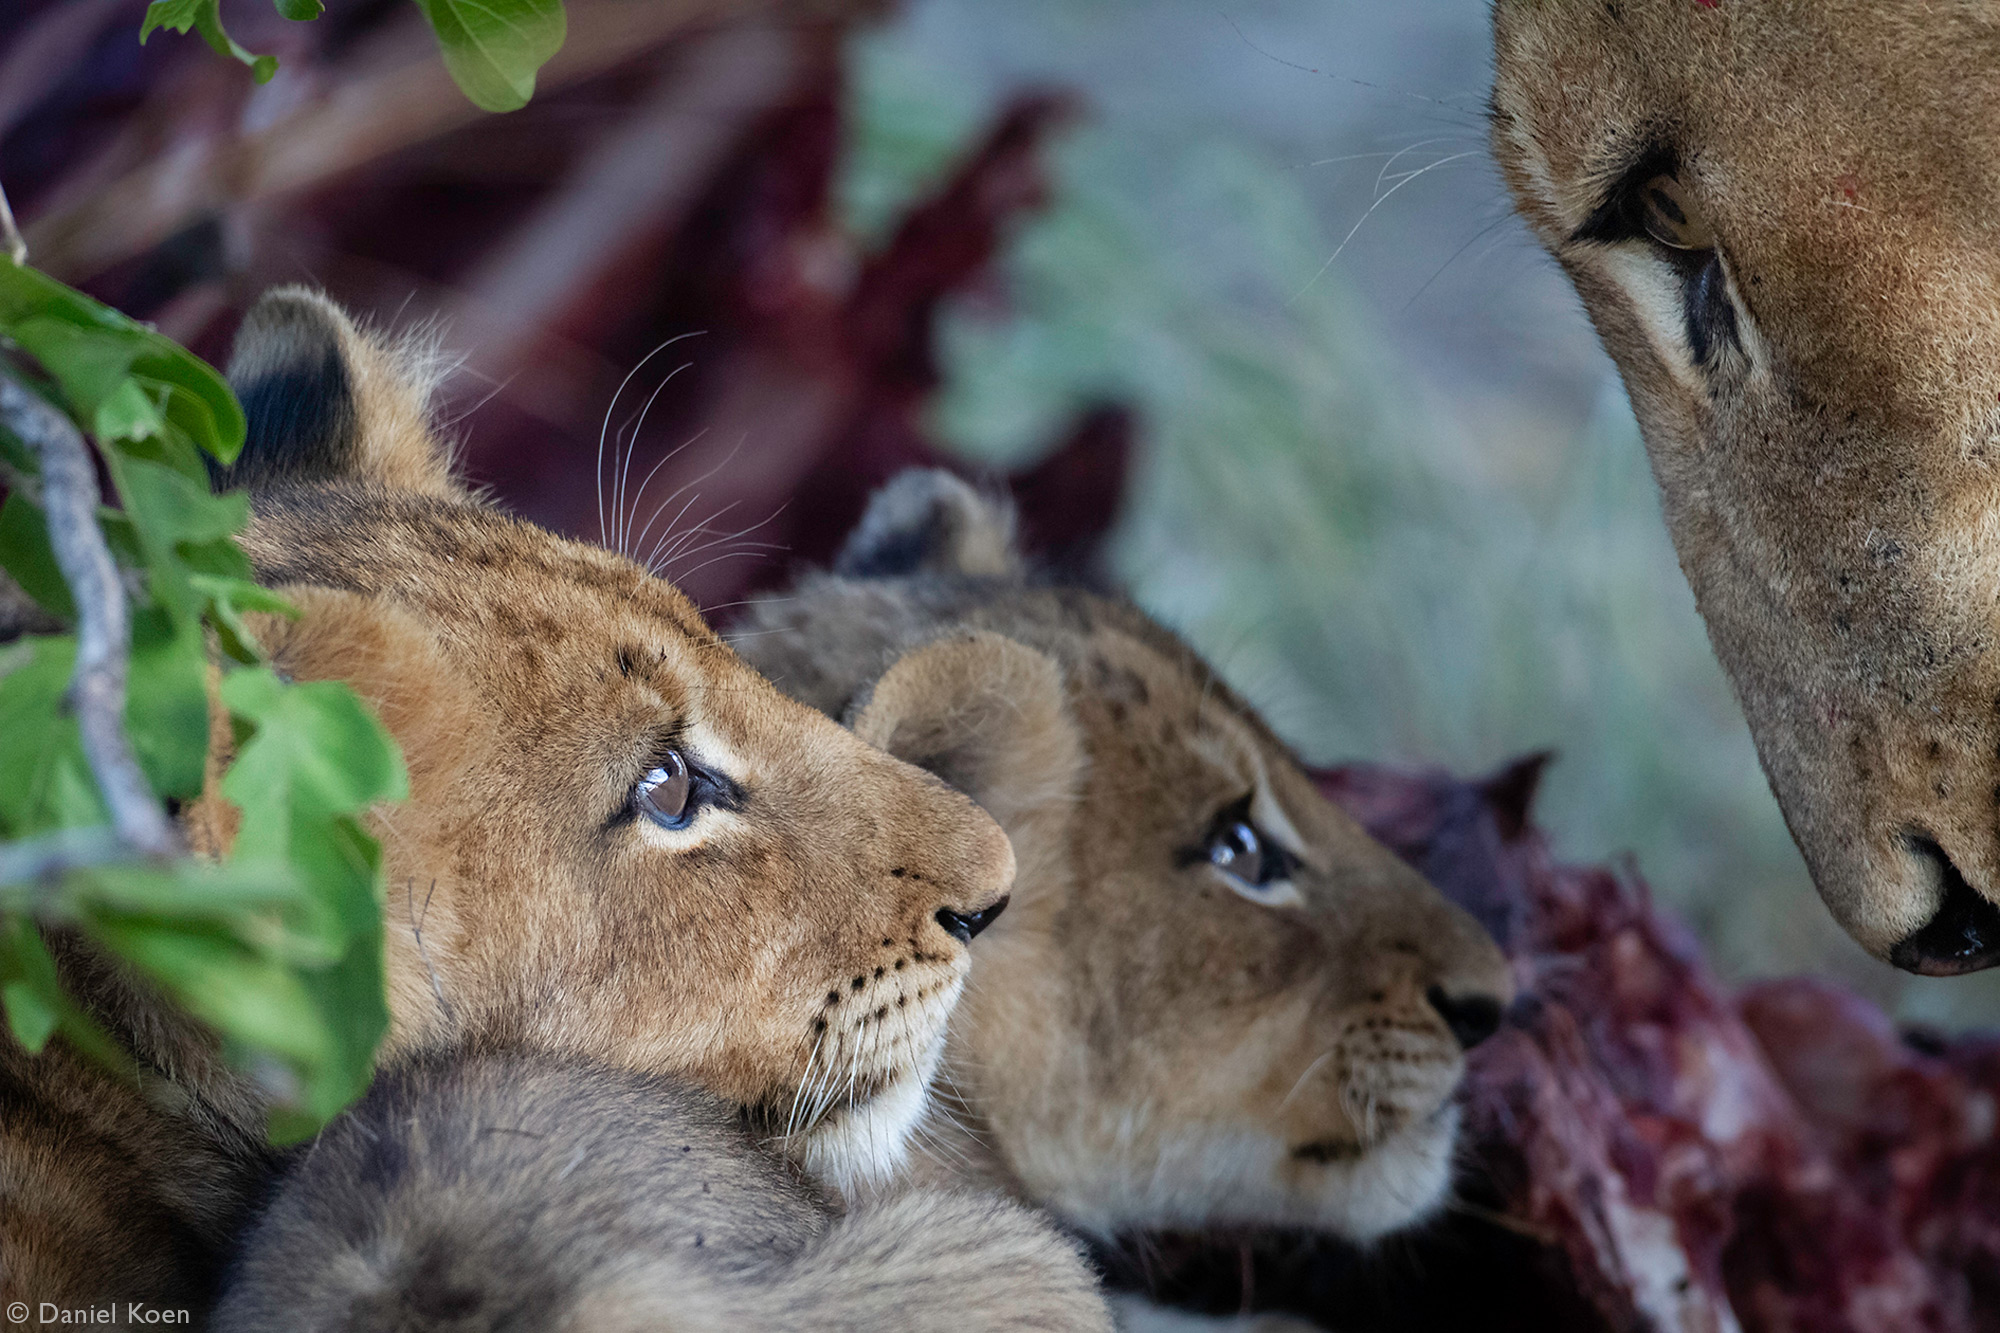 Lion cubs look up at their mother while at a wildebeest kill in Sabi Sands Private Game Reserve, South Africa